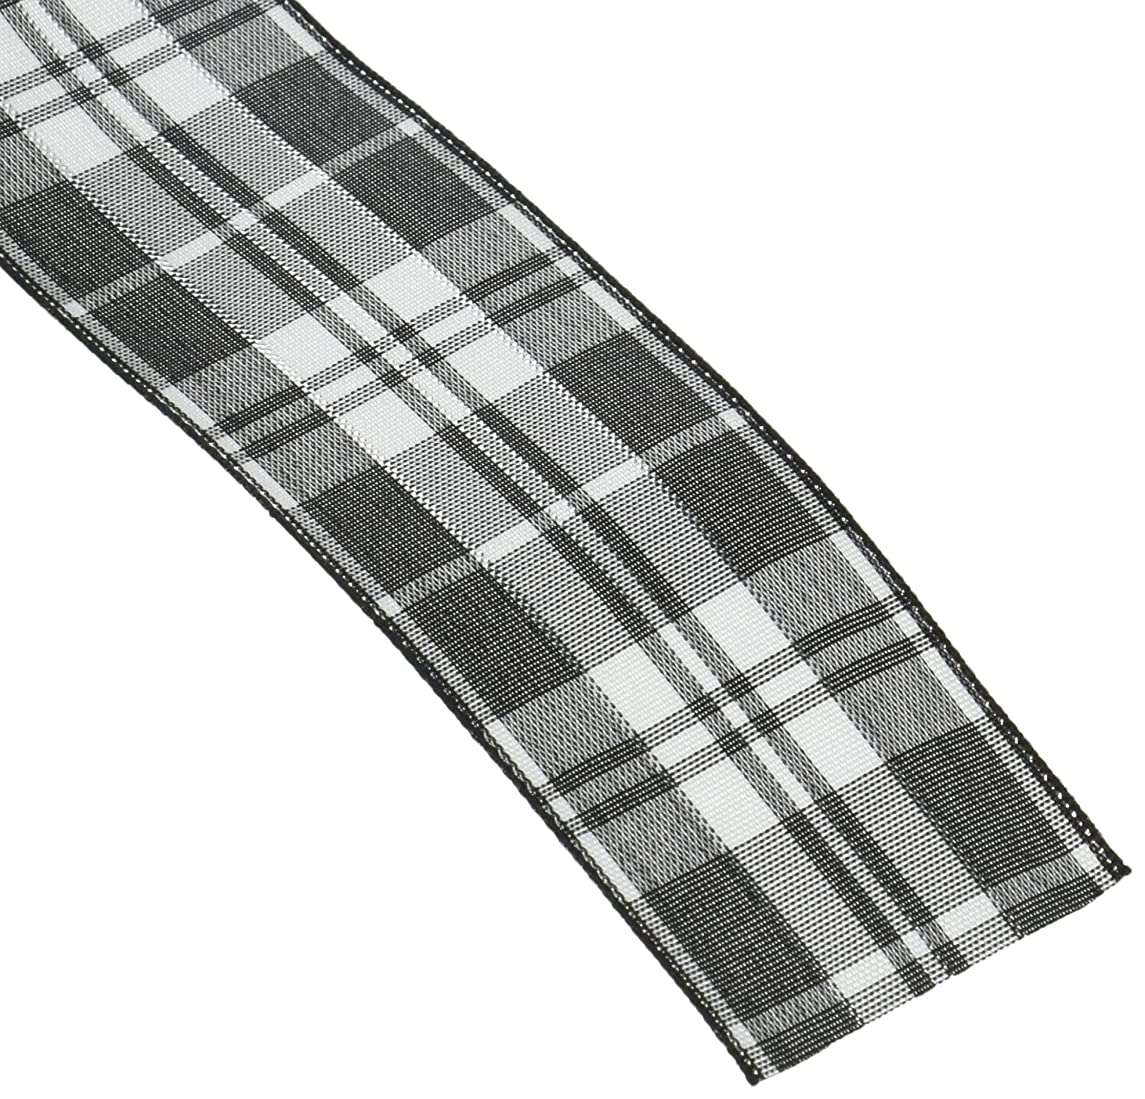 Homeford Firefly Imports Plaid Checkered Wired Christmas Ribbon, 1-1/2-Inch, 10 Yards, Black, 1.5